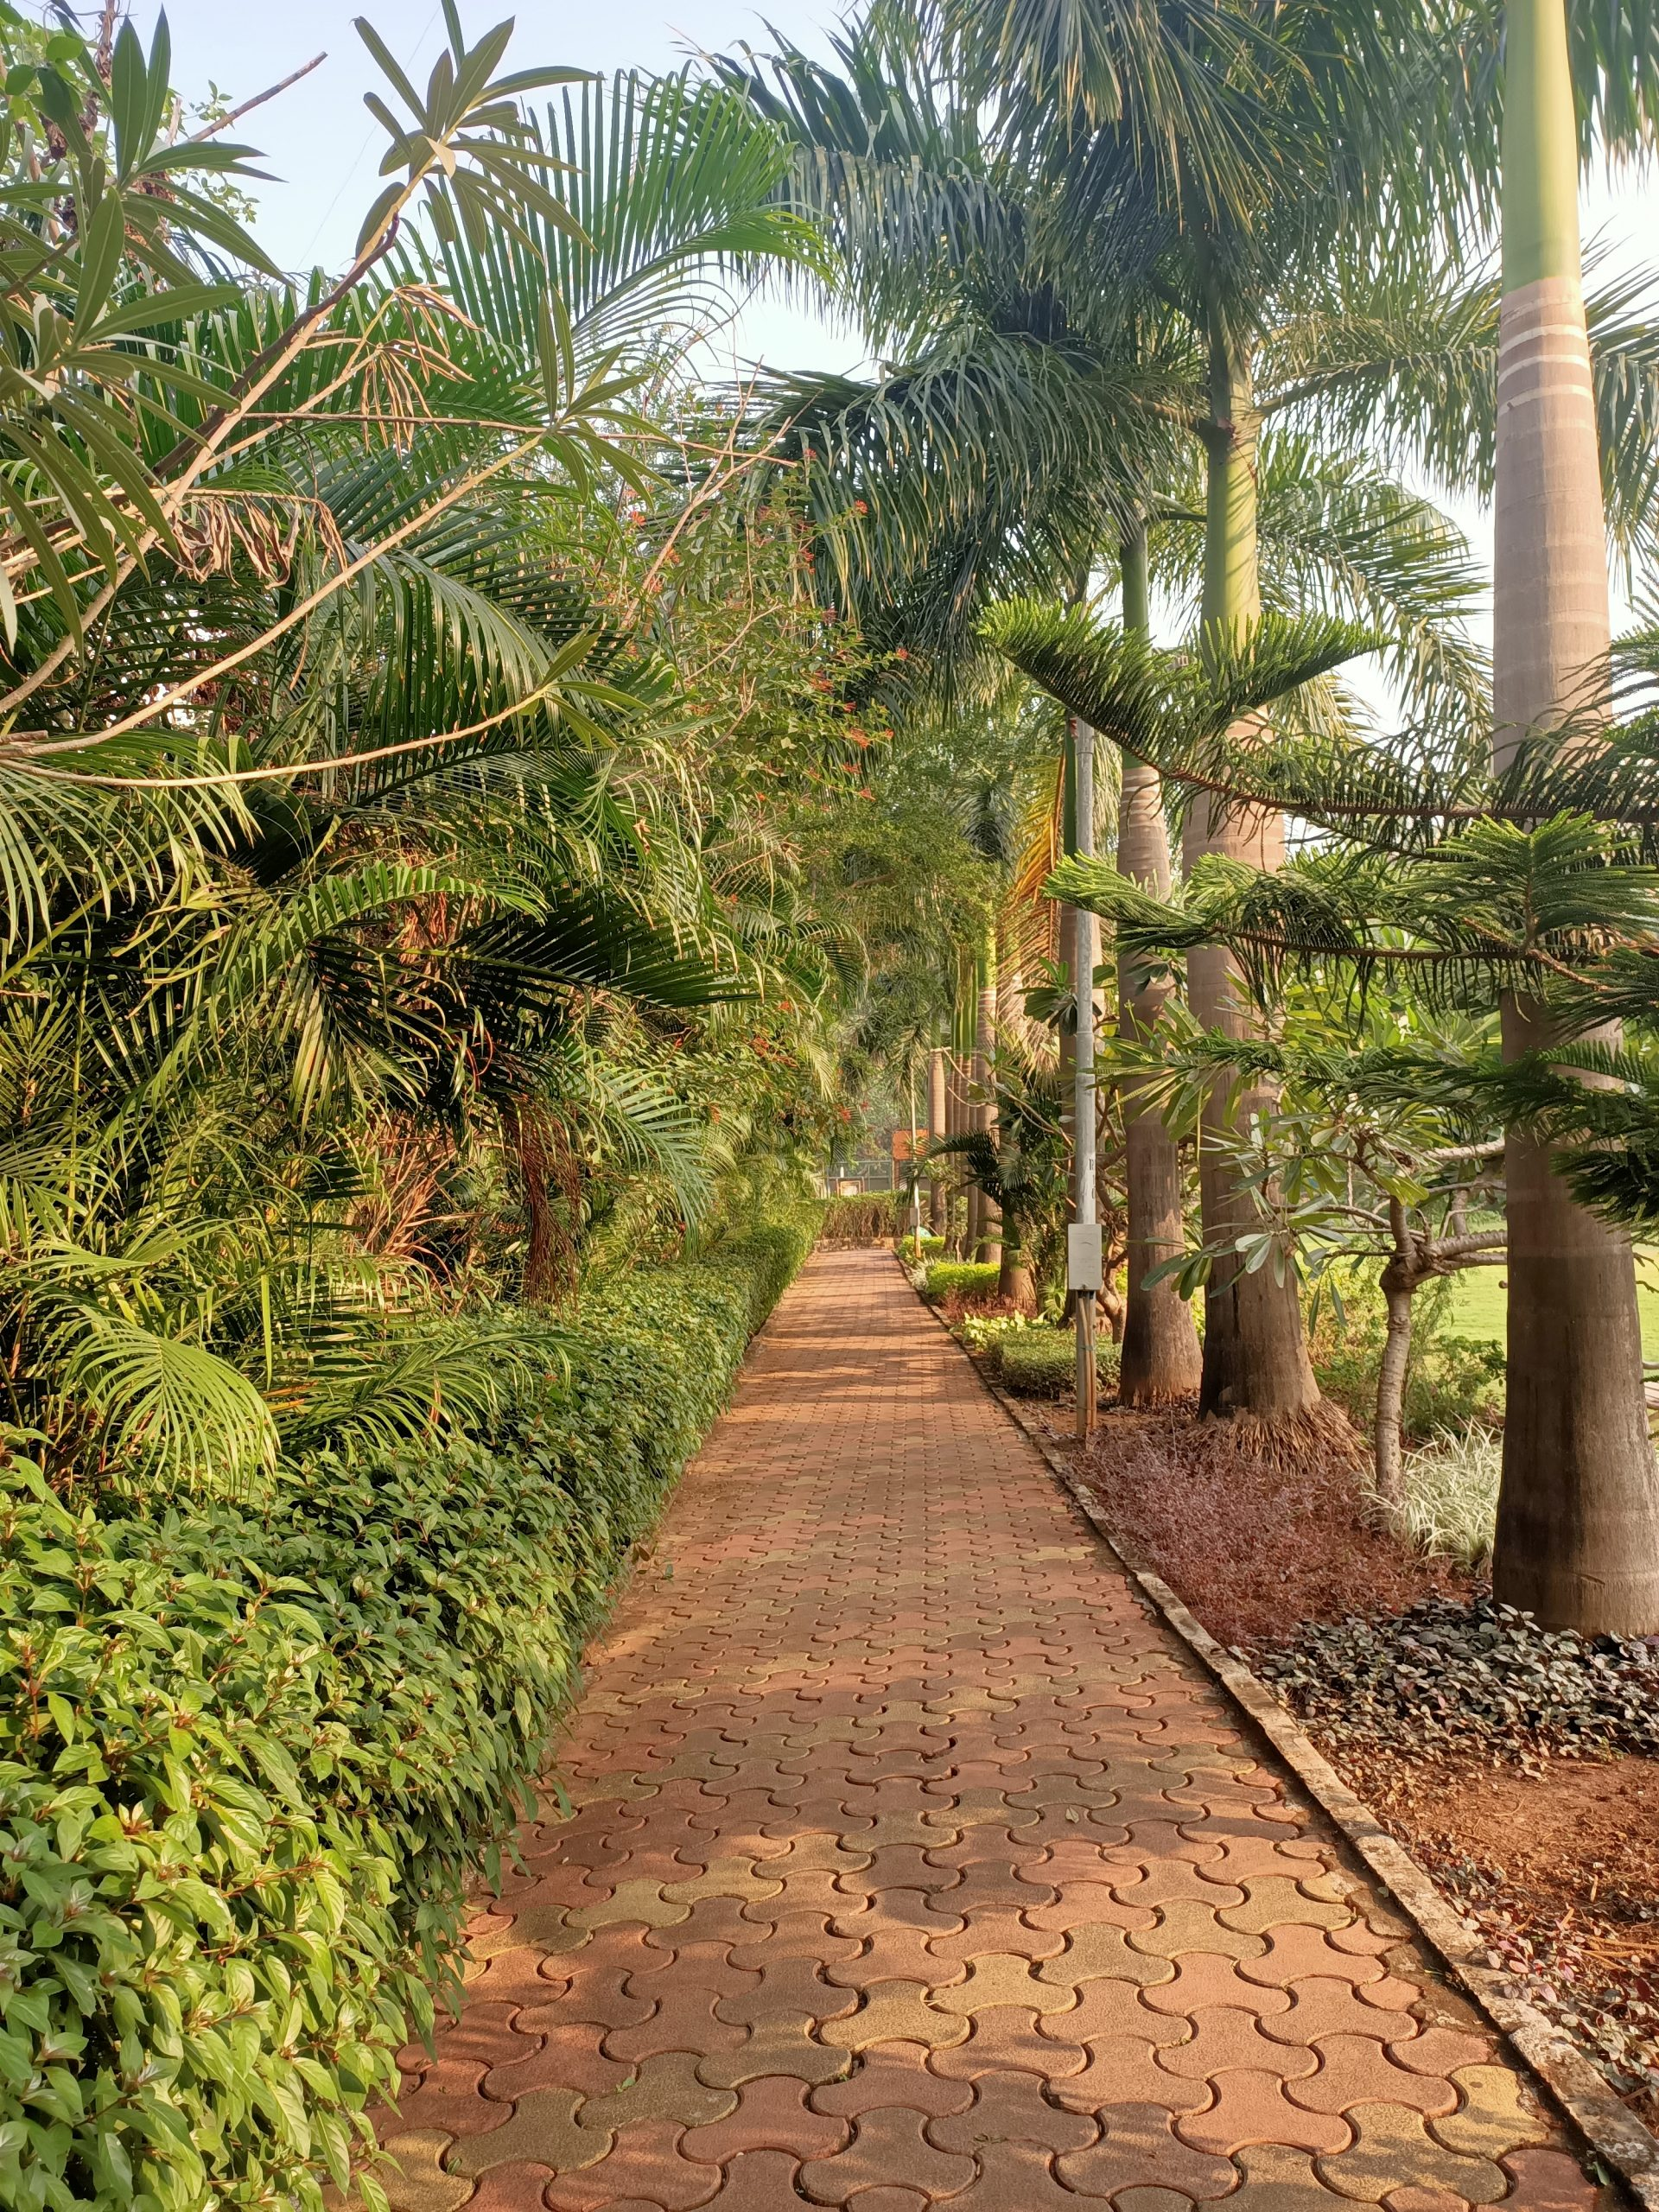 walking track in garden